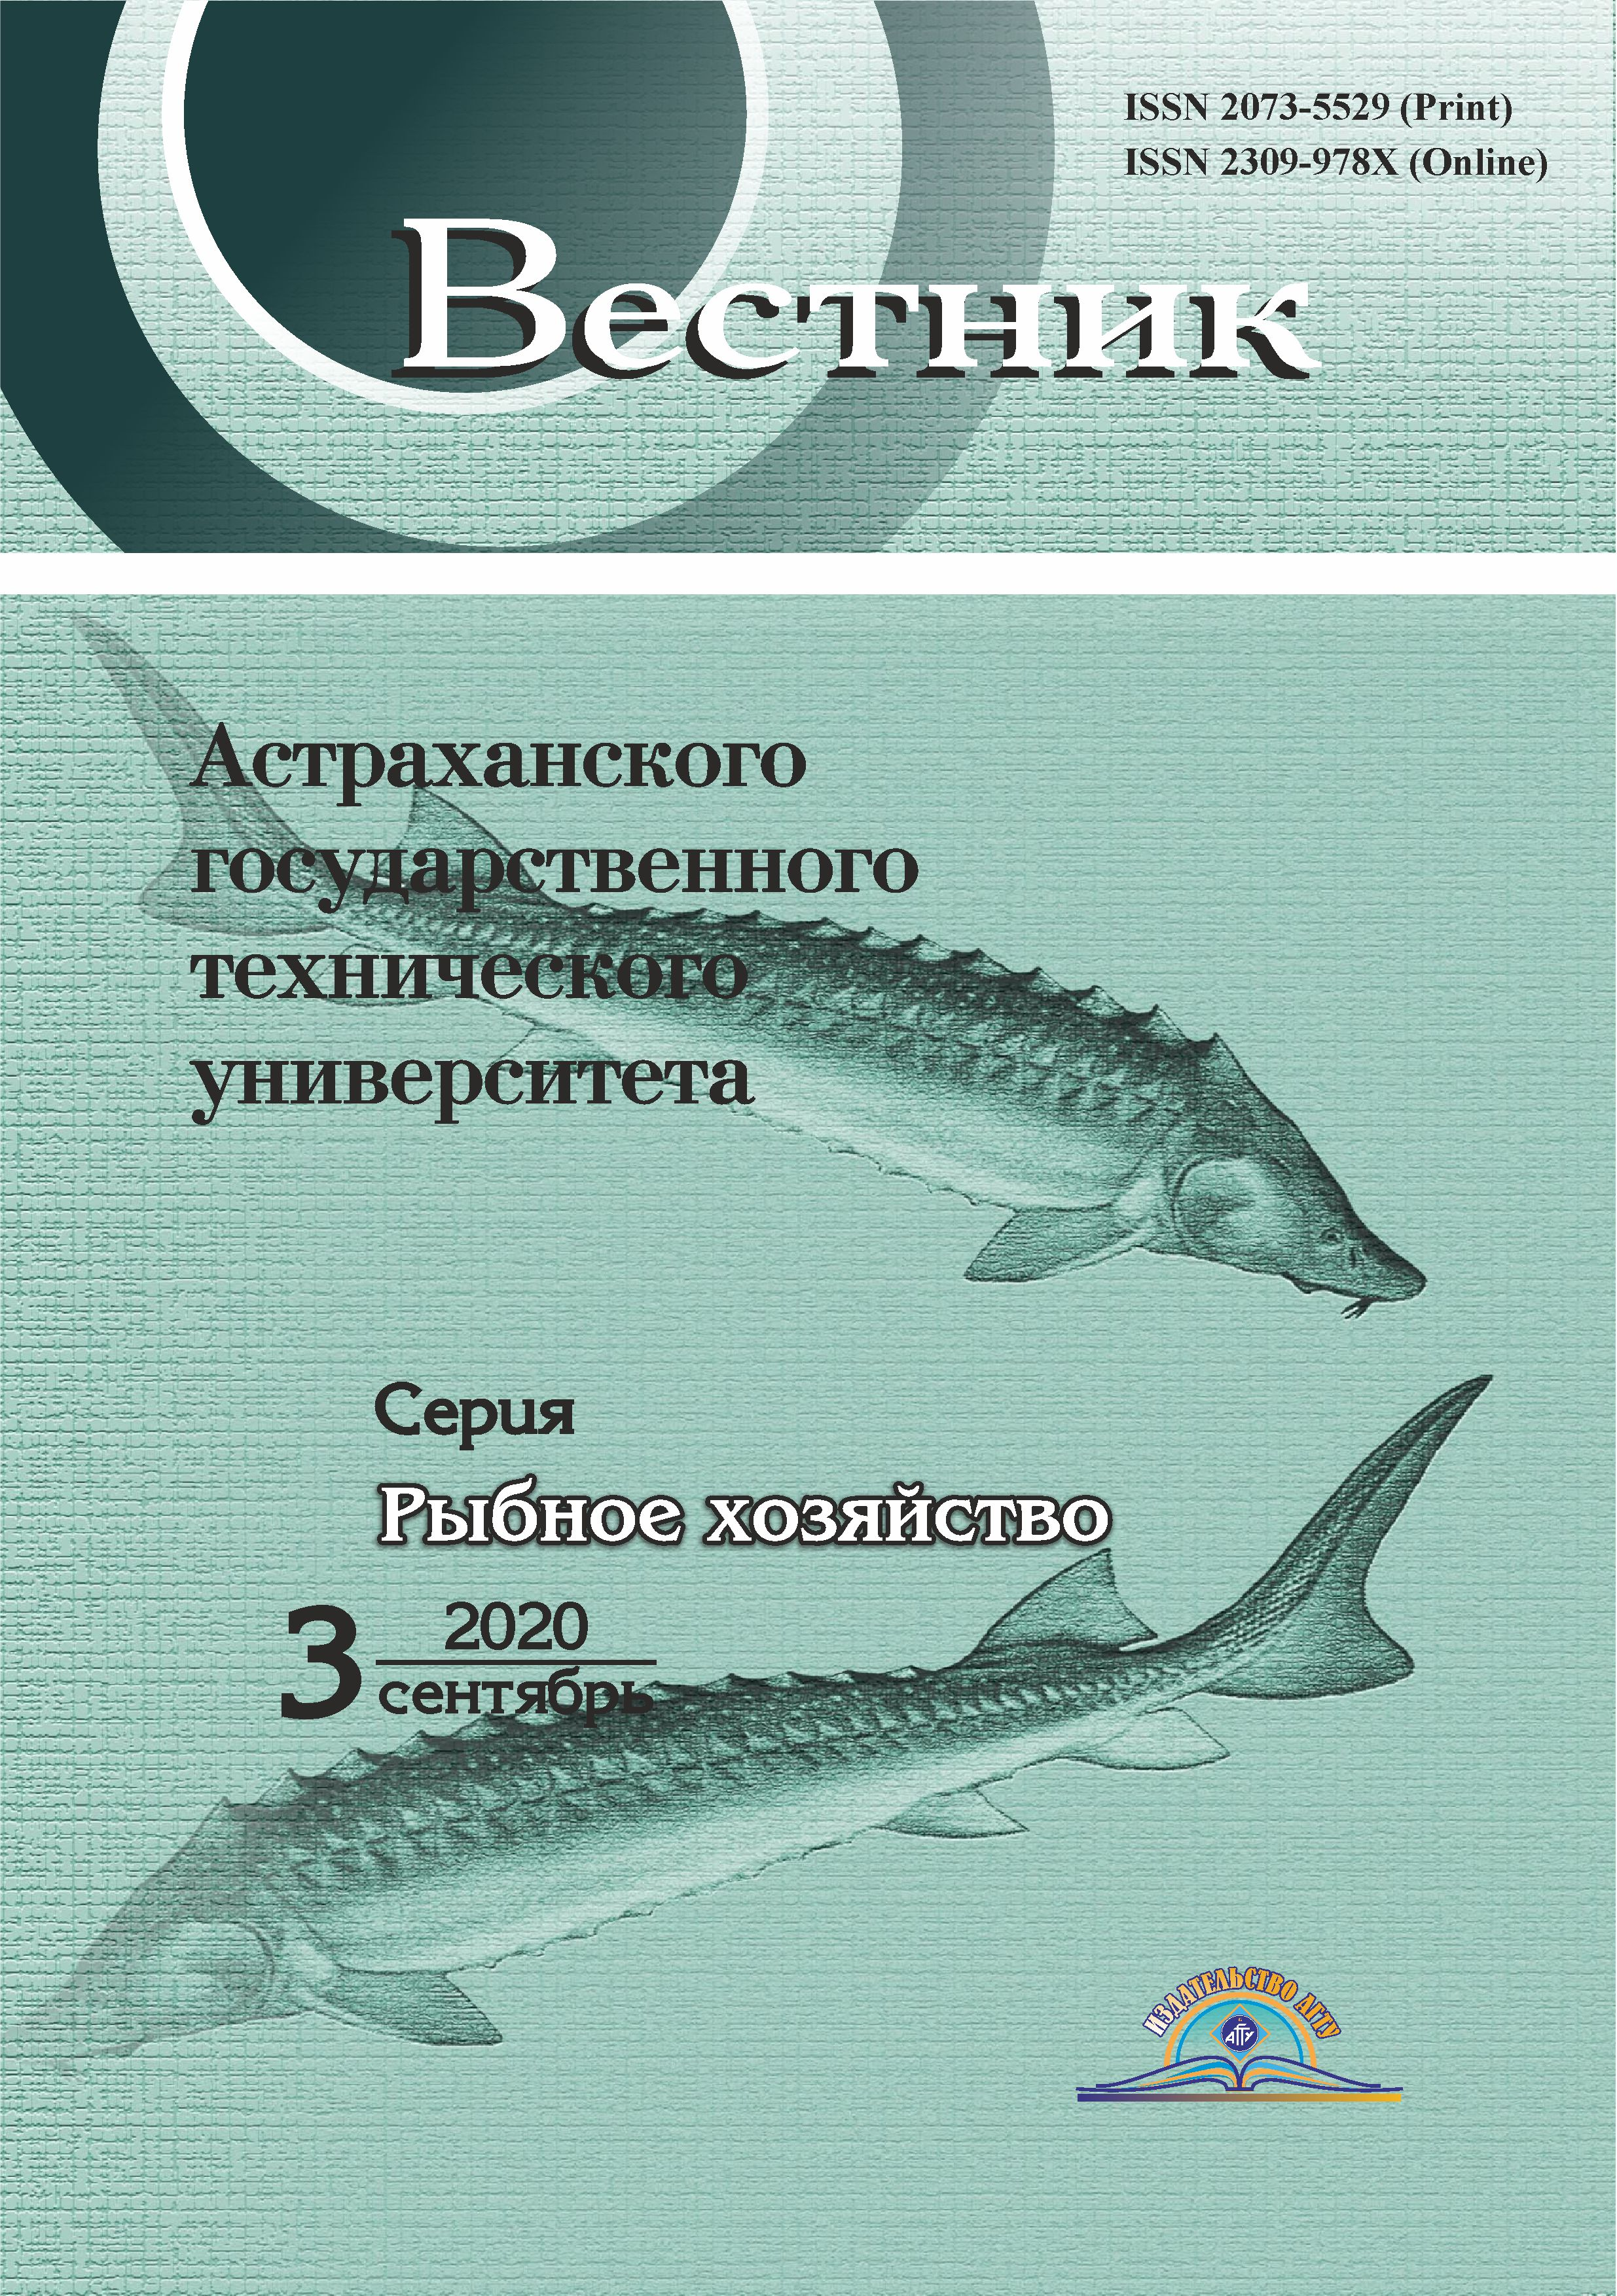 ANALYSIS OF SPECIES COMPOSITION, PROBLEMS OF IDENTIFICATION  AND DISPERSAL PATHWAYS OF INVASIVE SPECIES OF FISH  IN VOLGA RIVER BASIN